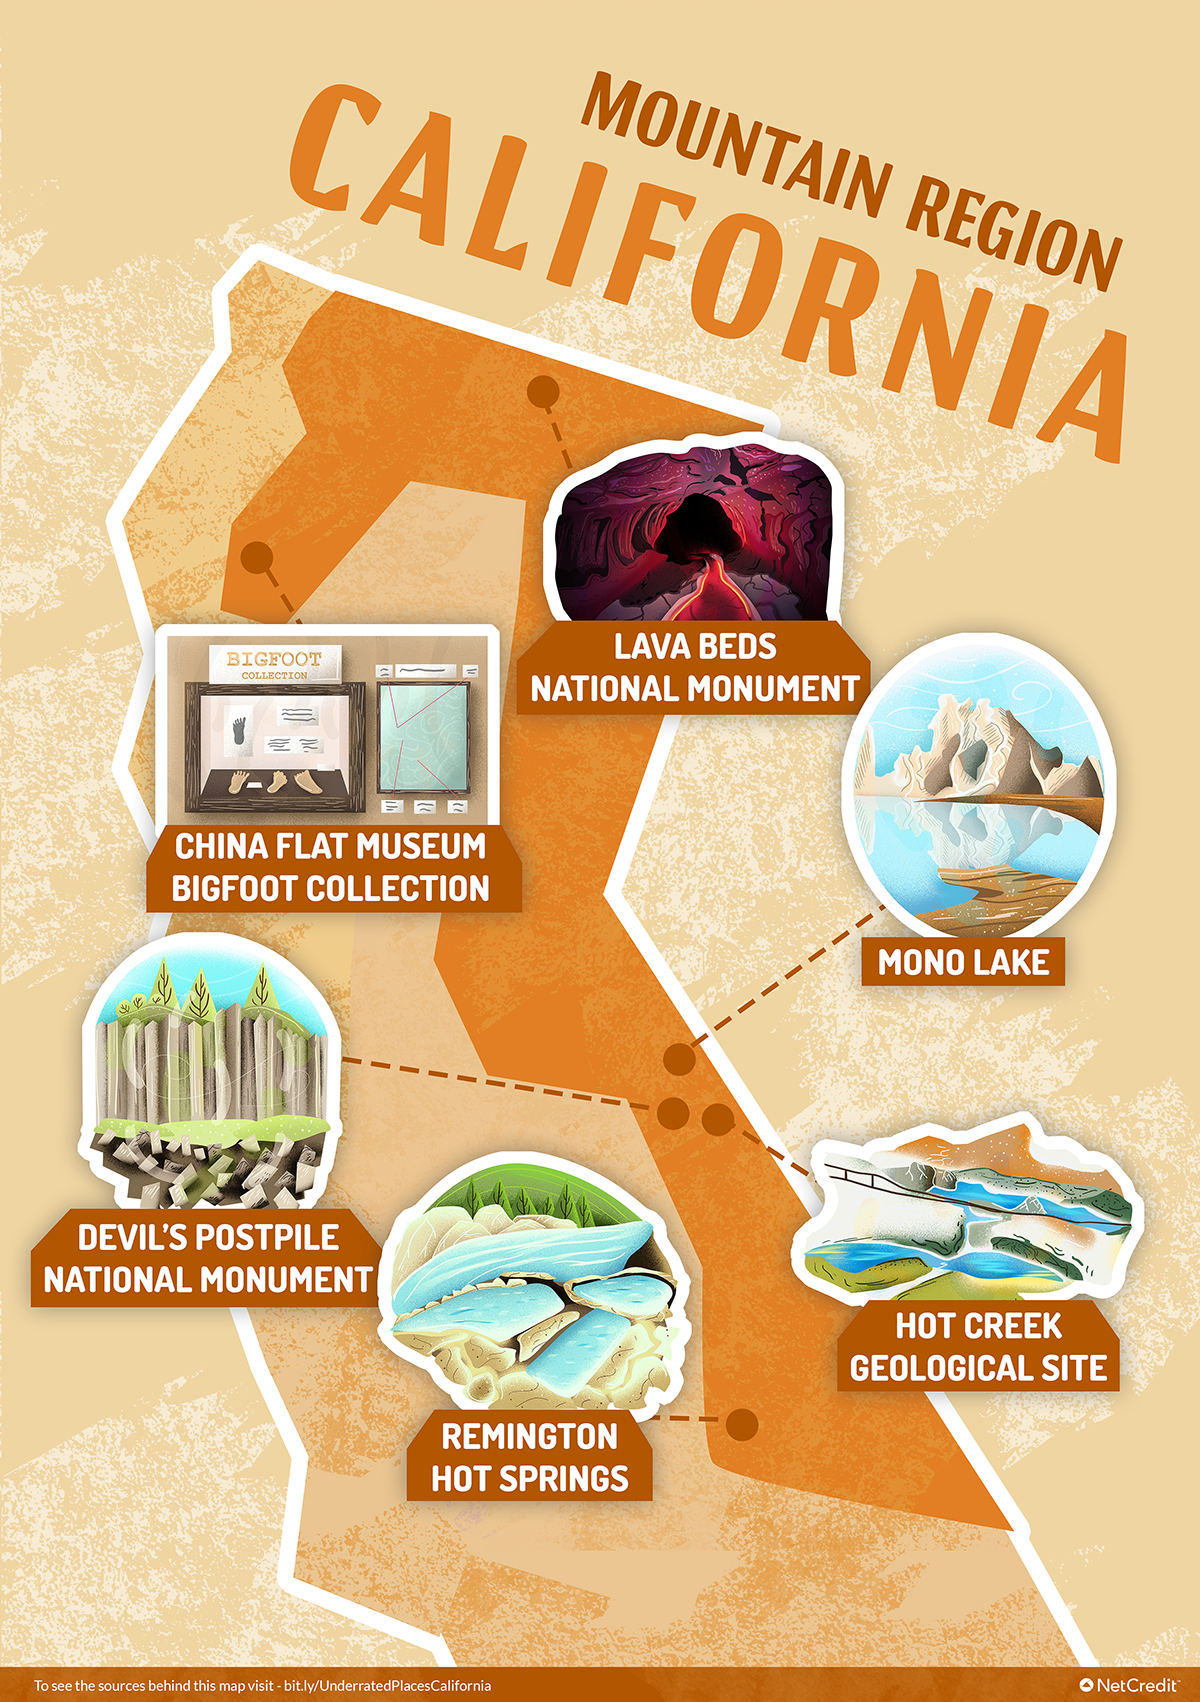 Outline of California's mountain region pointing out specific places that are worth a visit